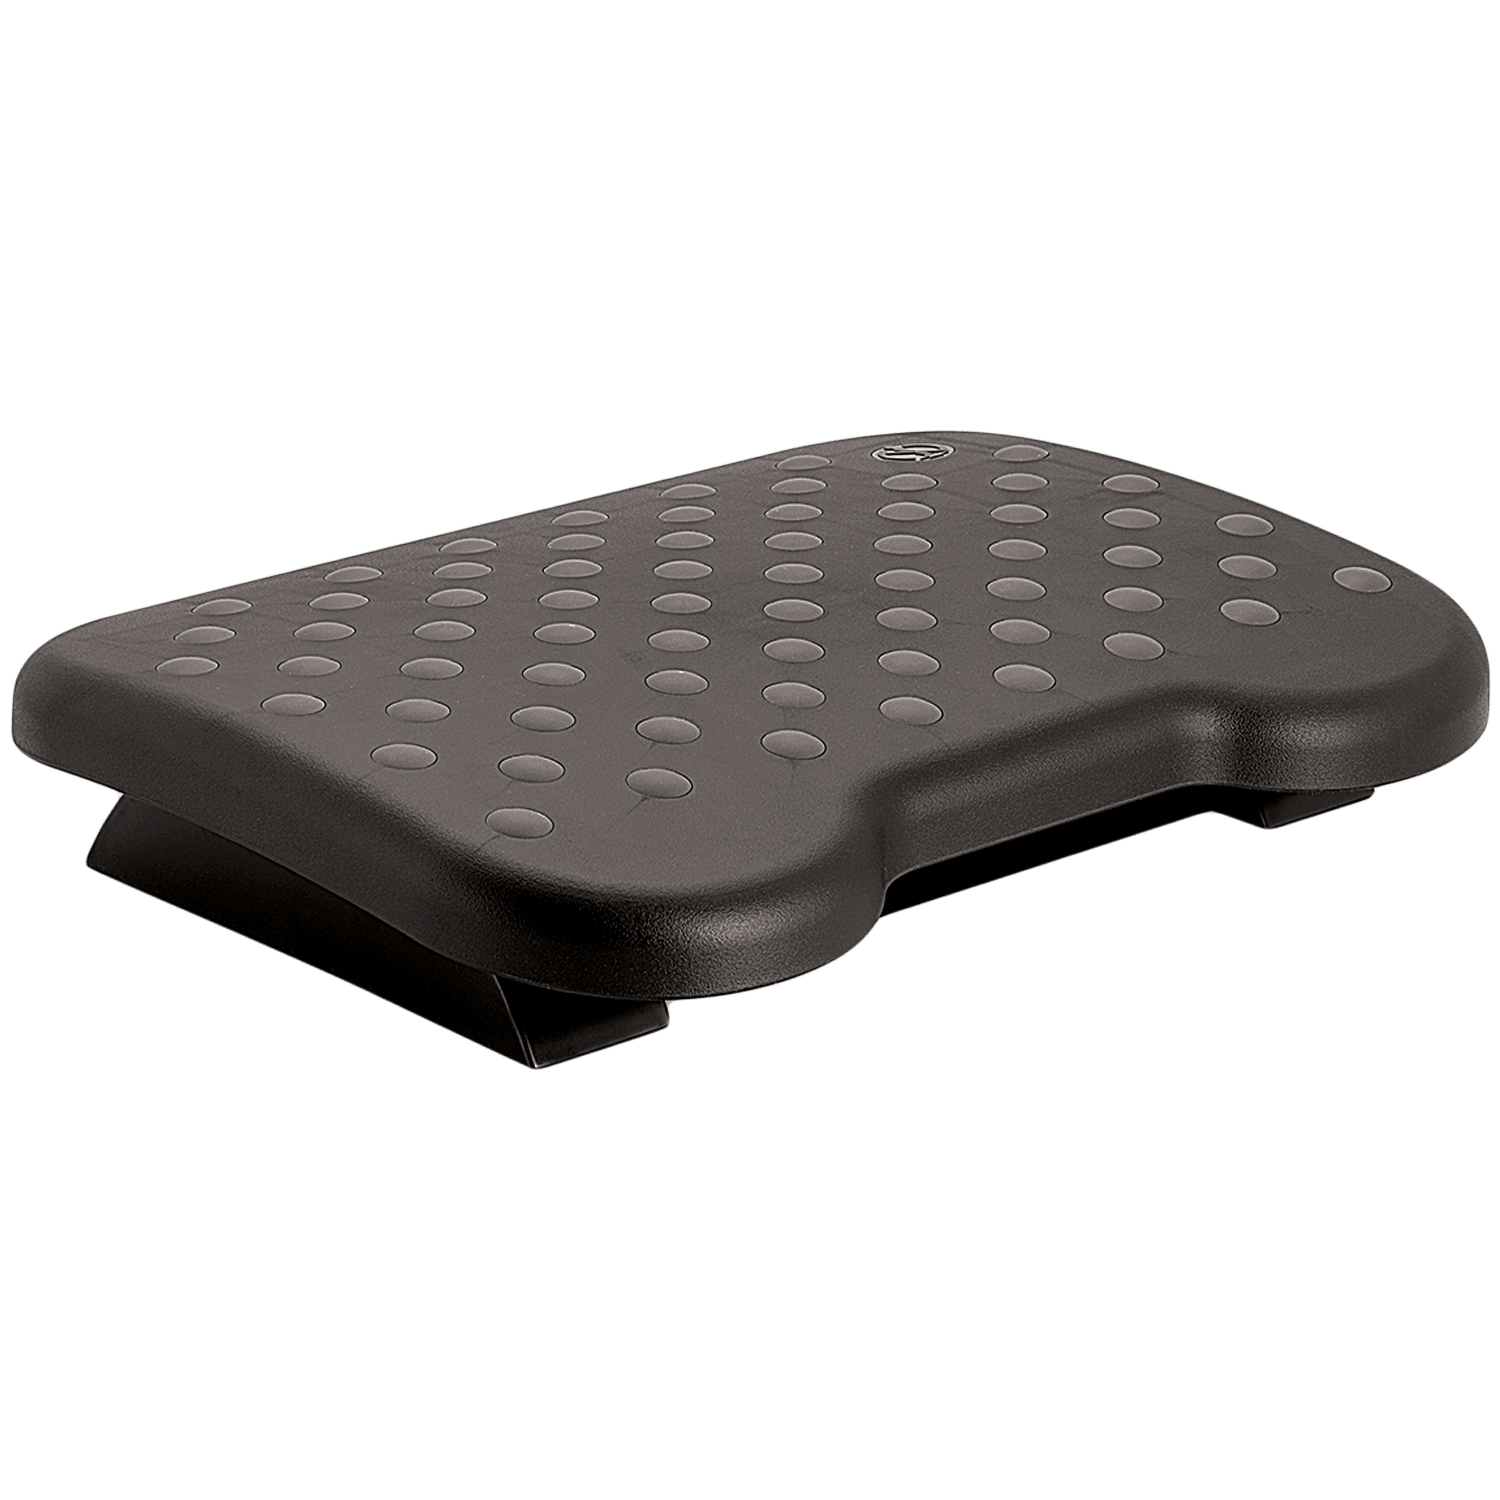 Palo PALO017 Feet Massager (Non-Slip Feet, Black)